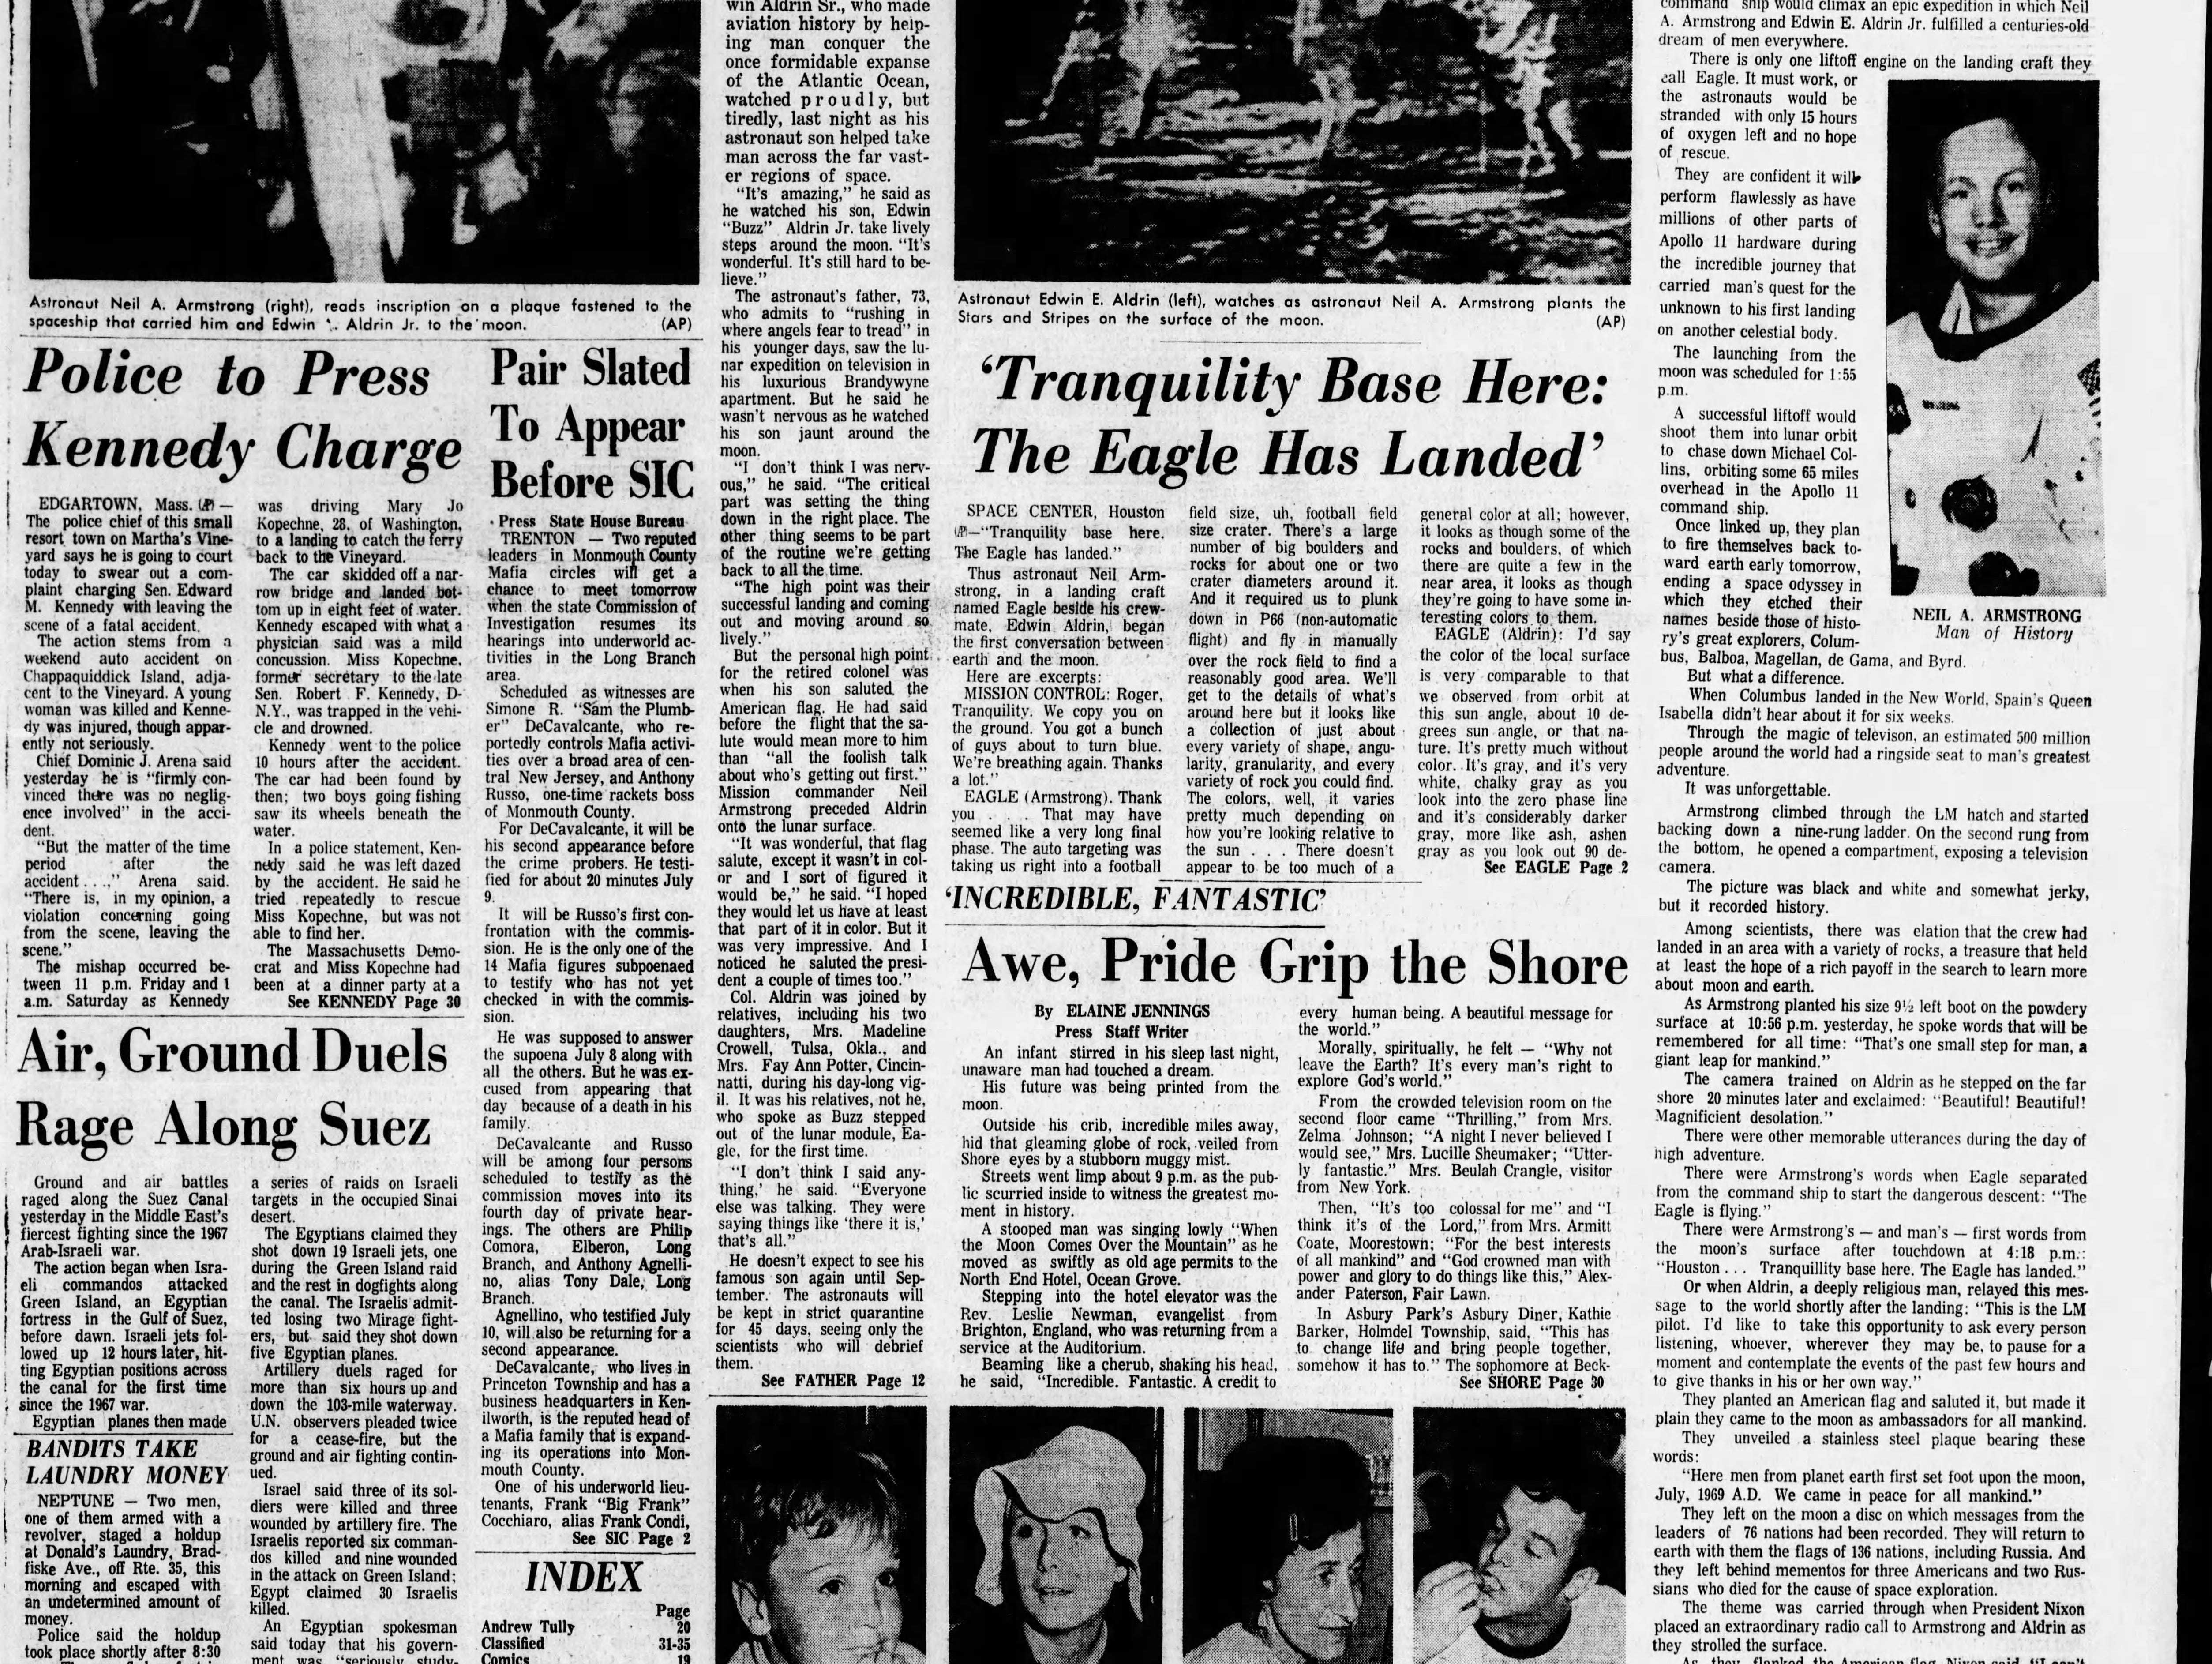 """Astronauts Neil Armstrong and Buzz Aldrin become the first human beings to step foot on the moon as """"awe, pride grip the Shore,"""" reports the Asbury Park Press in the Monday, July 21, 1969 edition."""